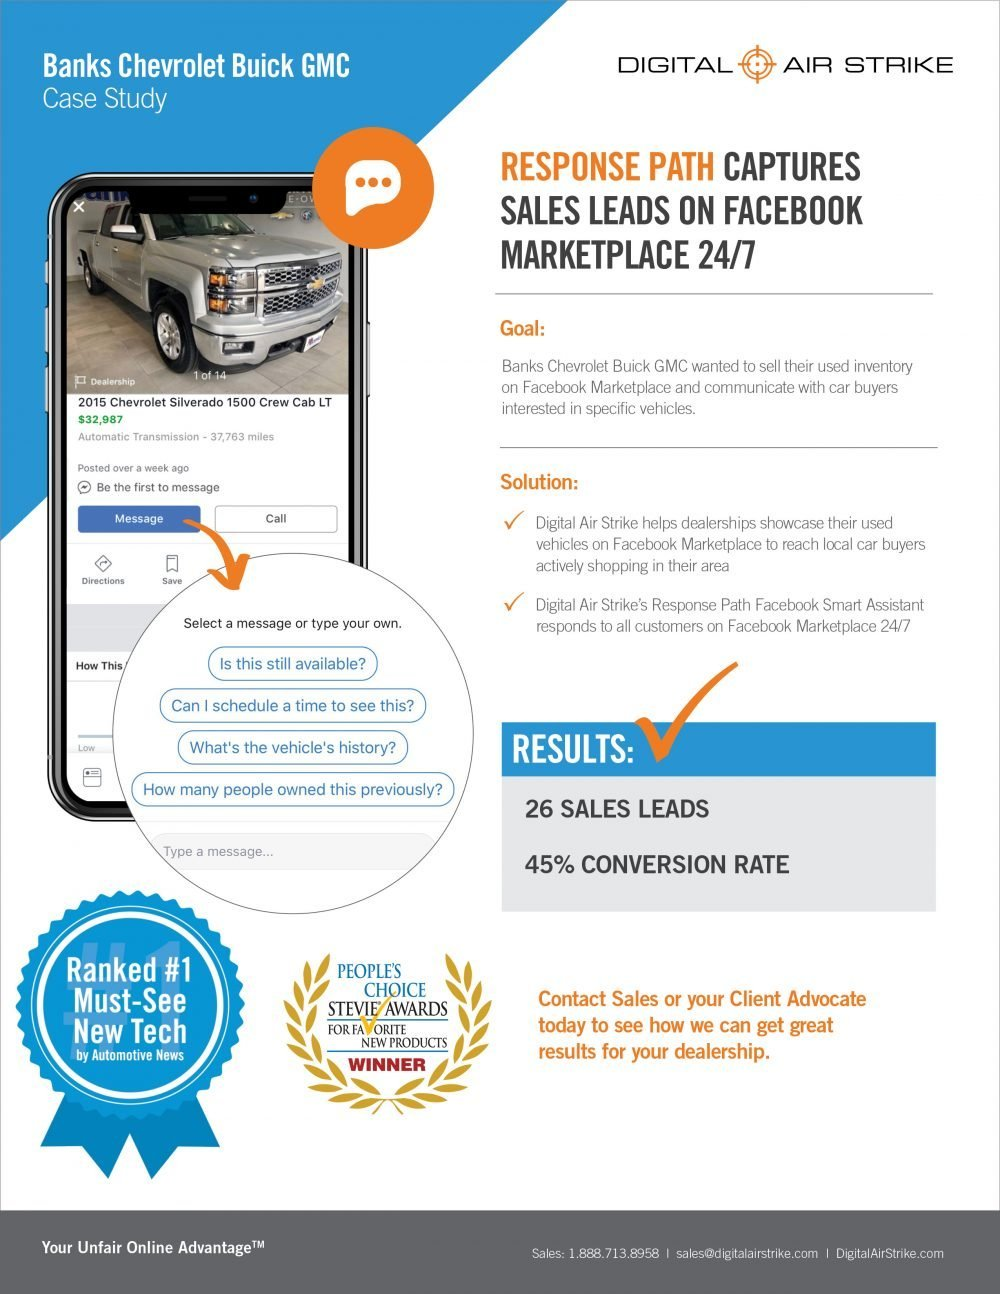 Case Study on Response Path Capturing Leads